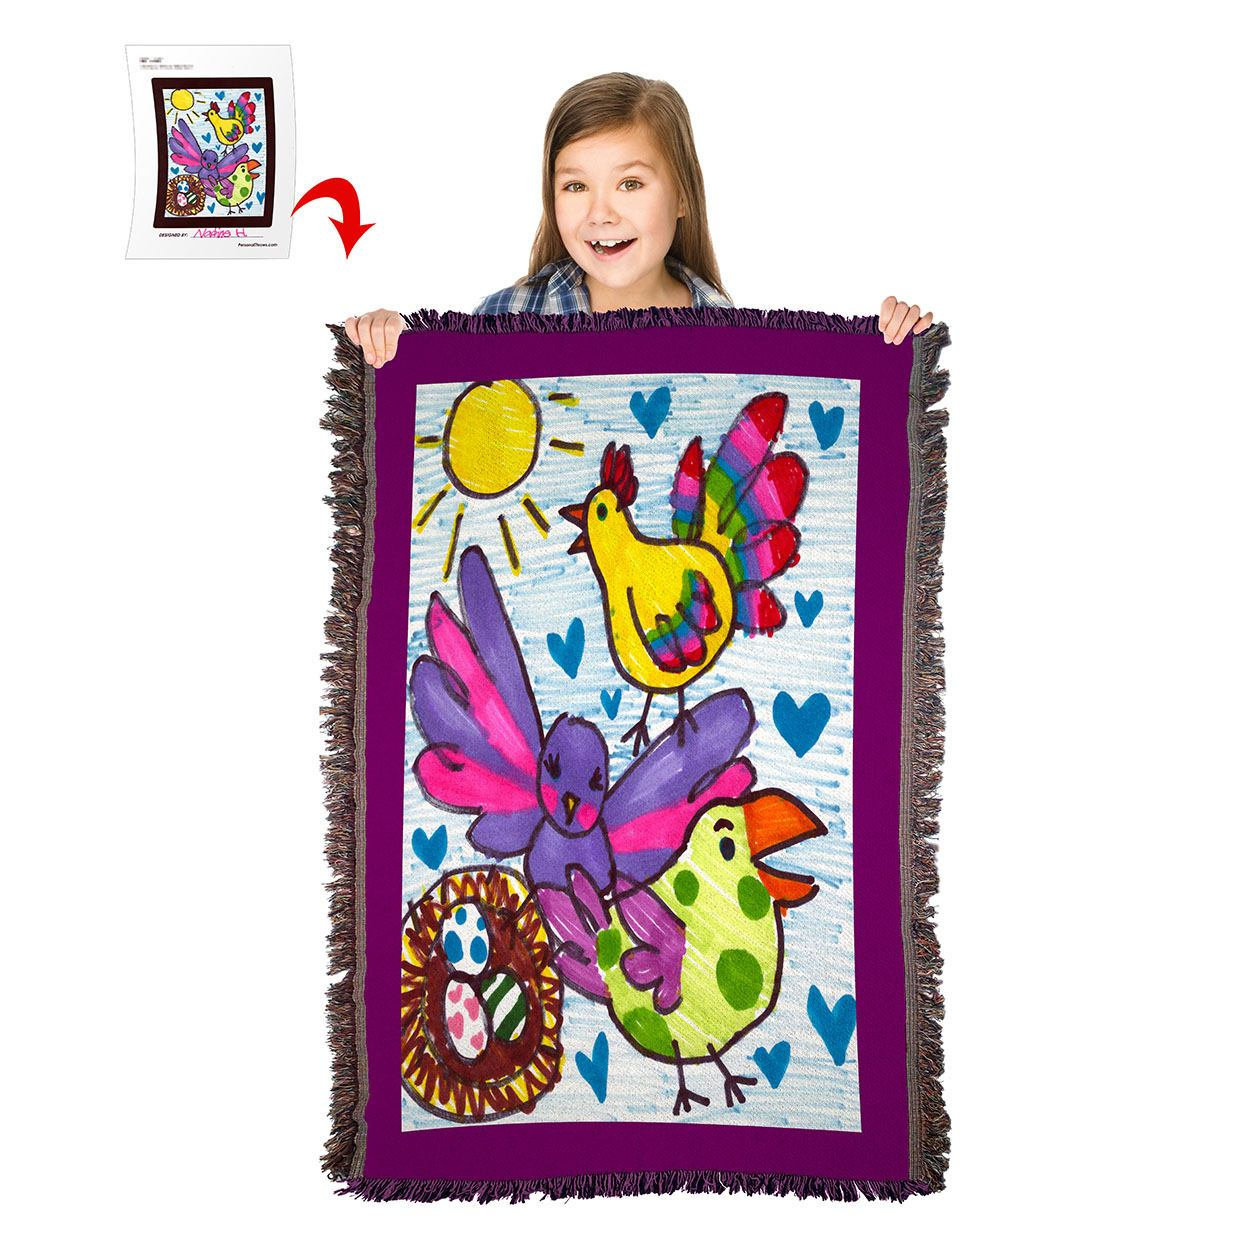 Turn Your Child's Drawing into a 54″ x 38″ HD Woven Throw Blanket